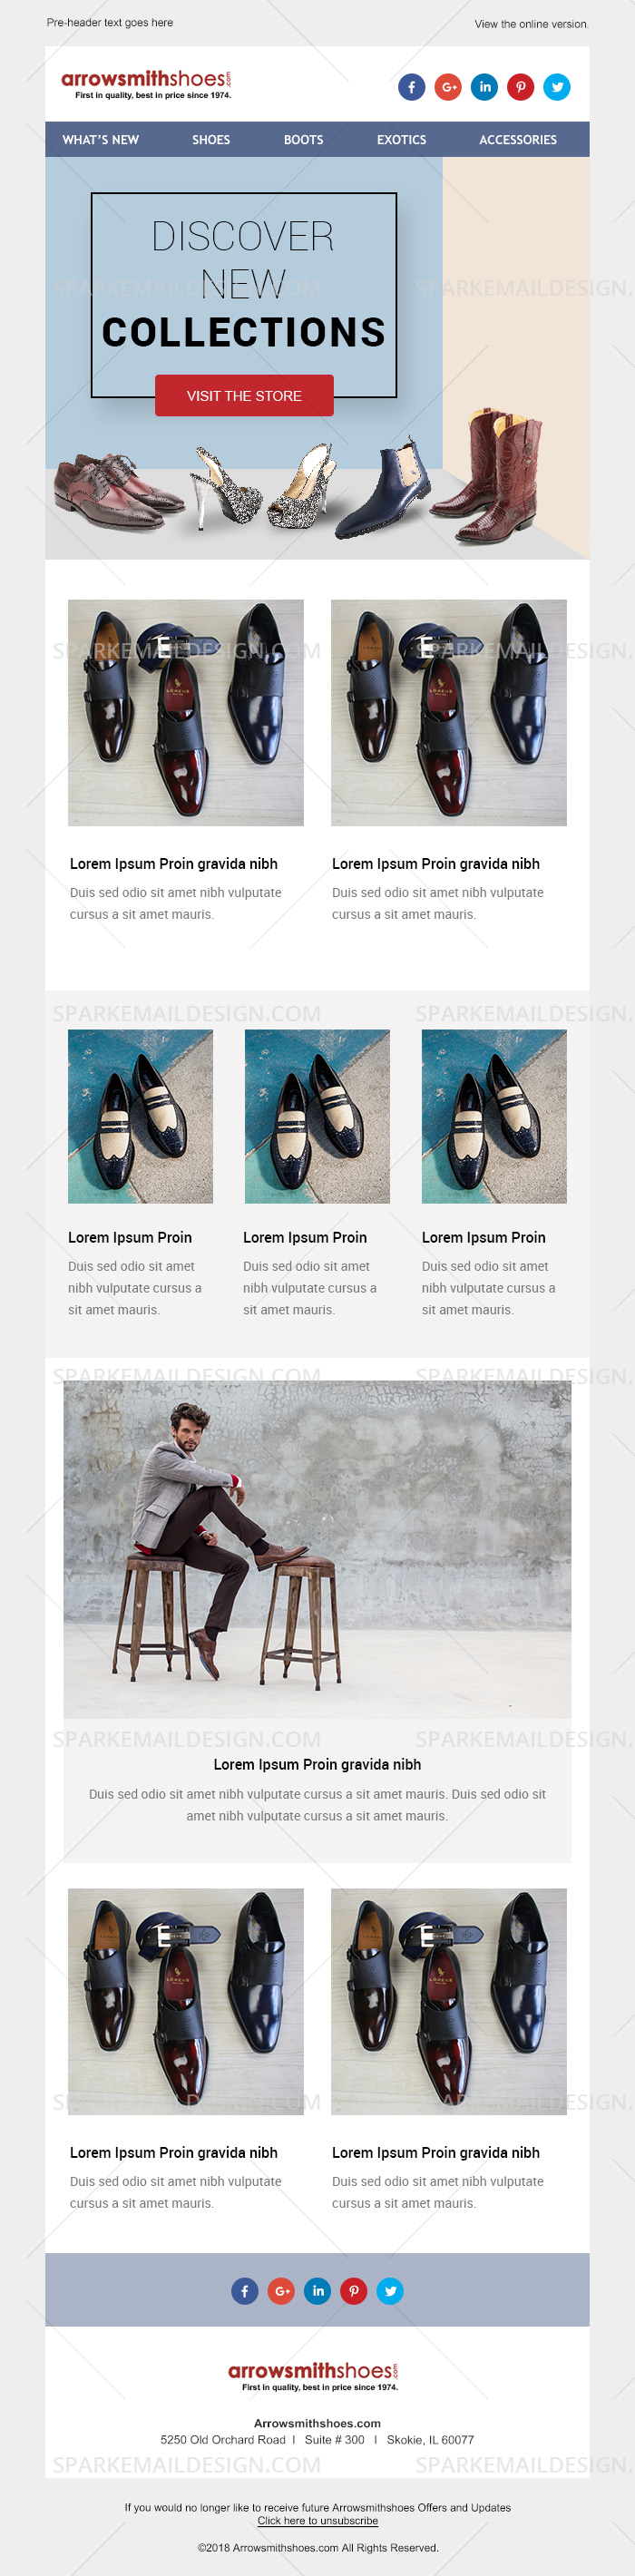 Arrowsmith Shoes Website